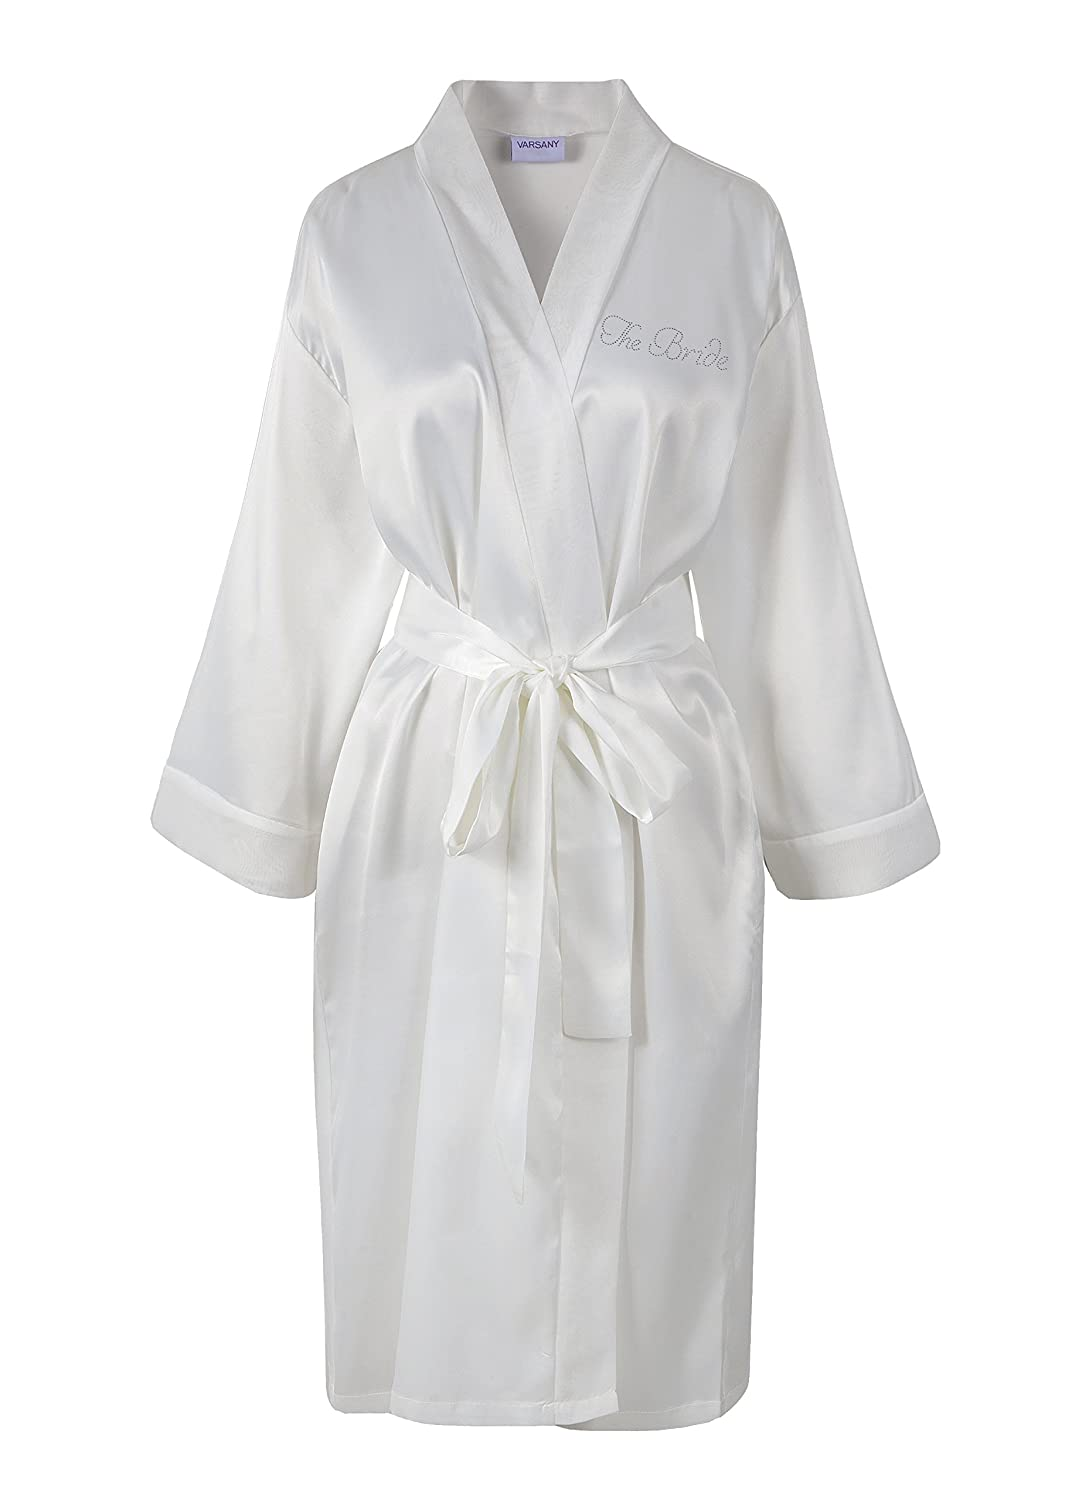 05c69239dc Ivory Varsany The Bride Satin Rhinestone Bathrobe Personalised Diamante Dressing  gown Kimono  Amazon.co.uk  Kitchen   Home